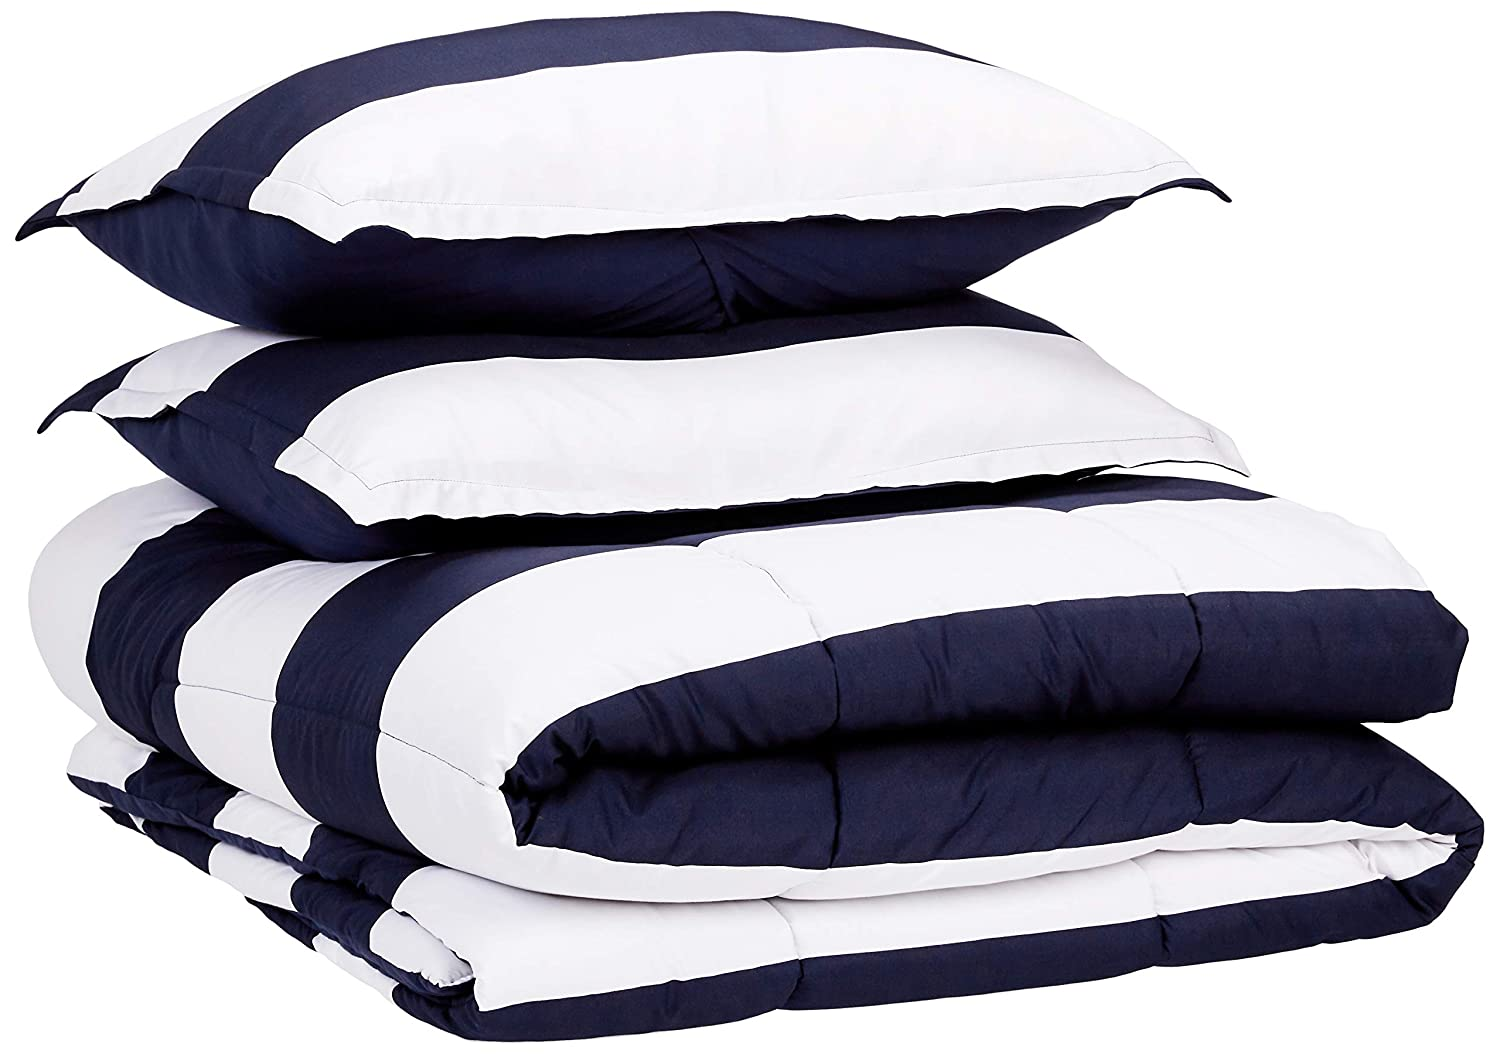 AmazonBasics Comforter Set, King, Navy Rugby Stripes, Microfiber, Ultra-Soft